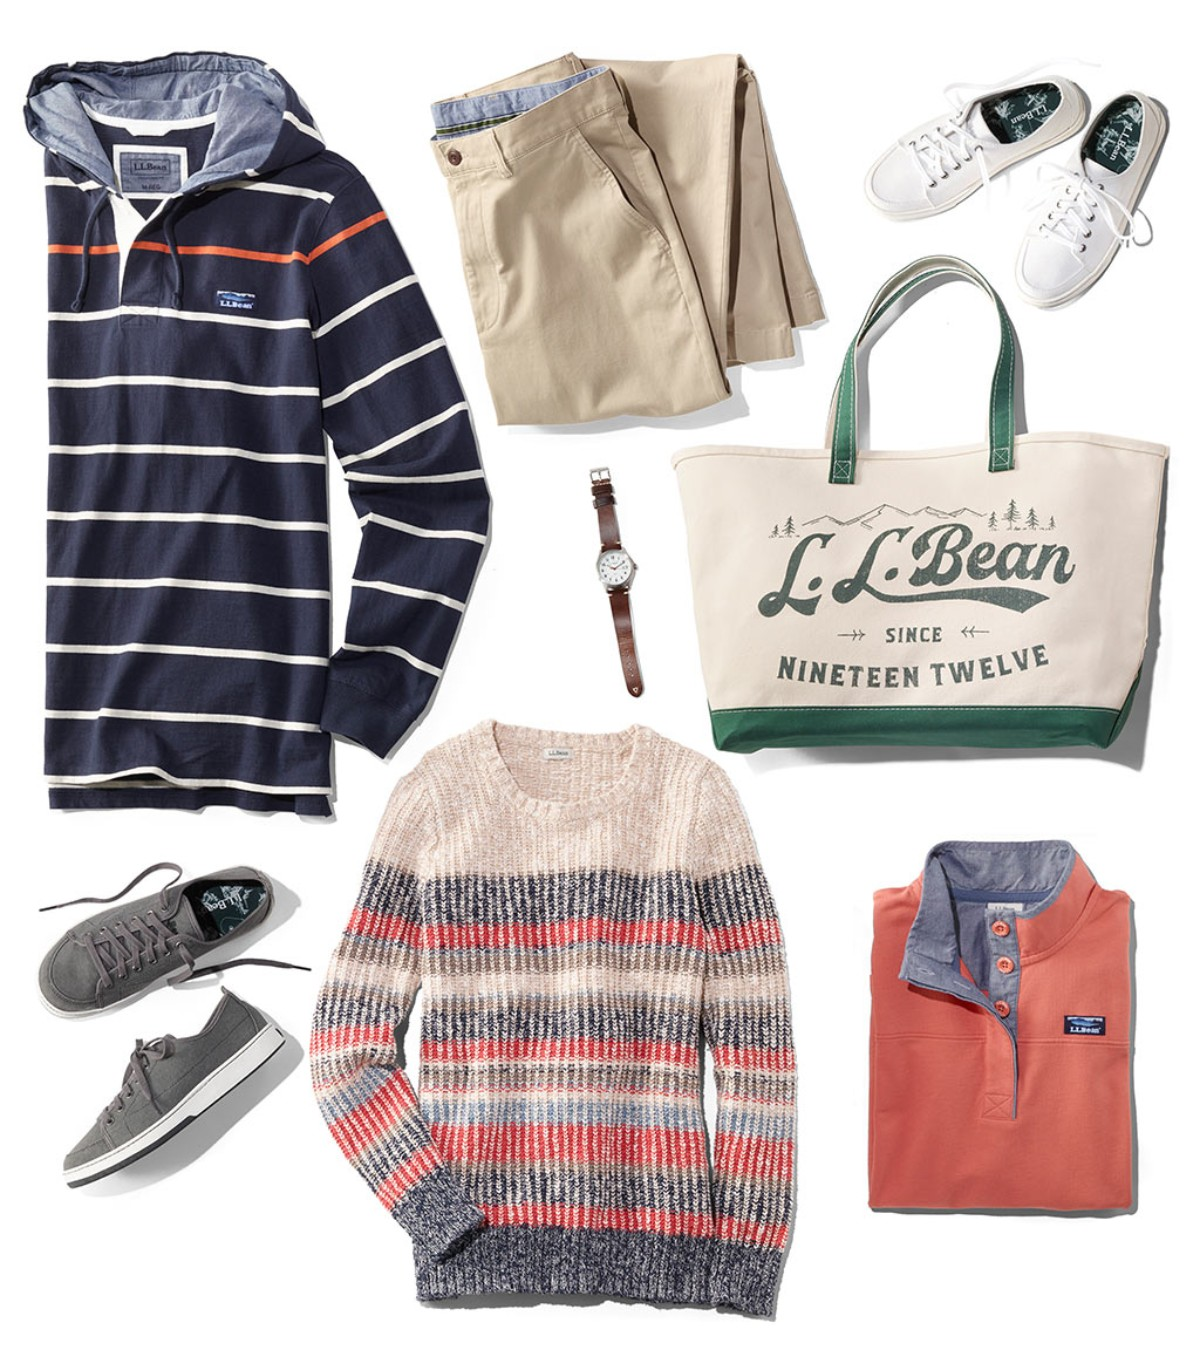 An assortment of L.L.Bean spring clothing and accessories.